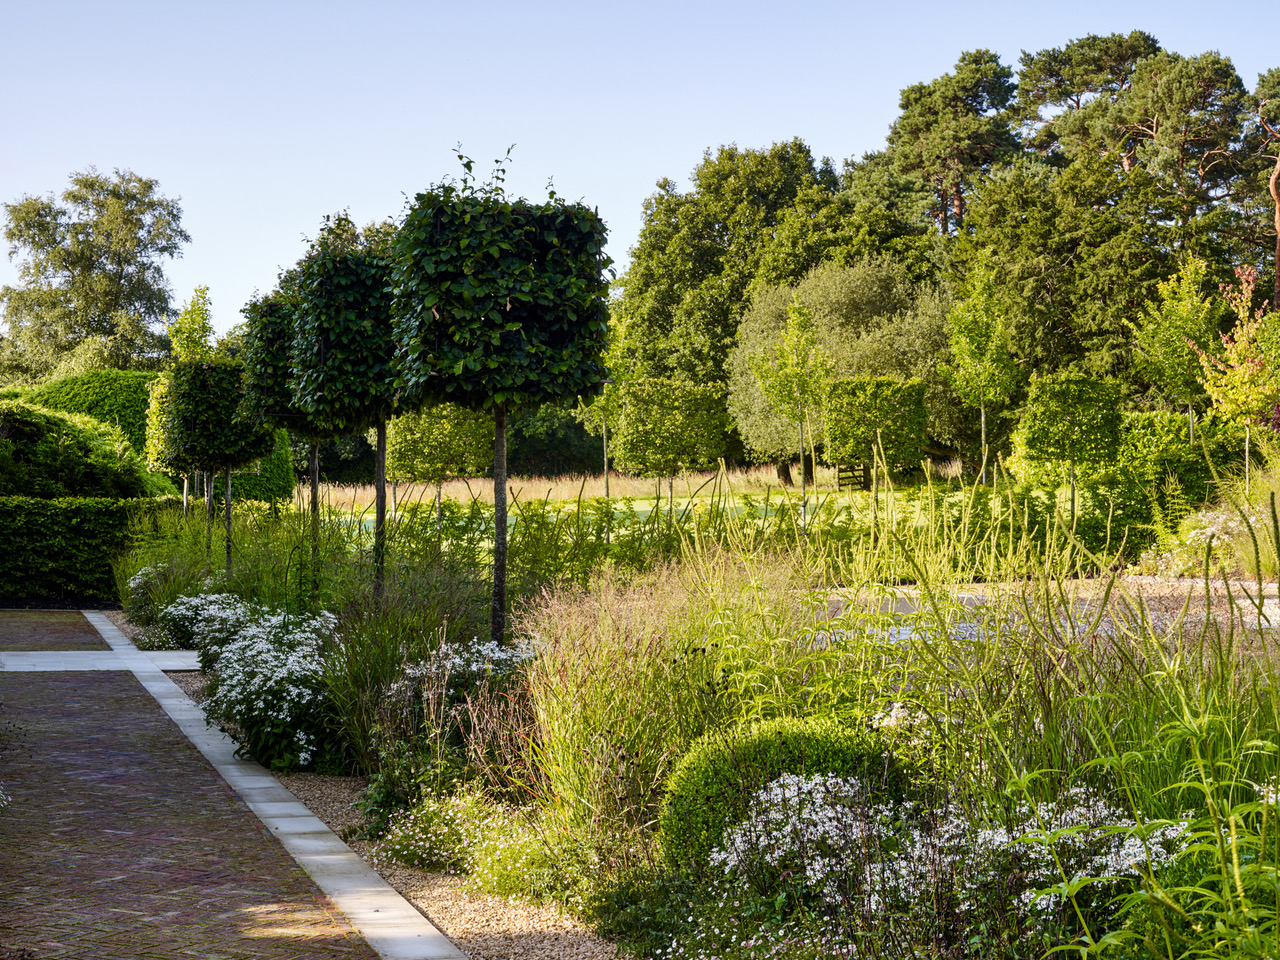 Marian Boswall Landscape Architects - Danegate House (20th August 2019)